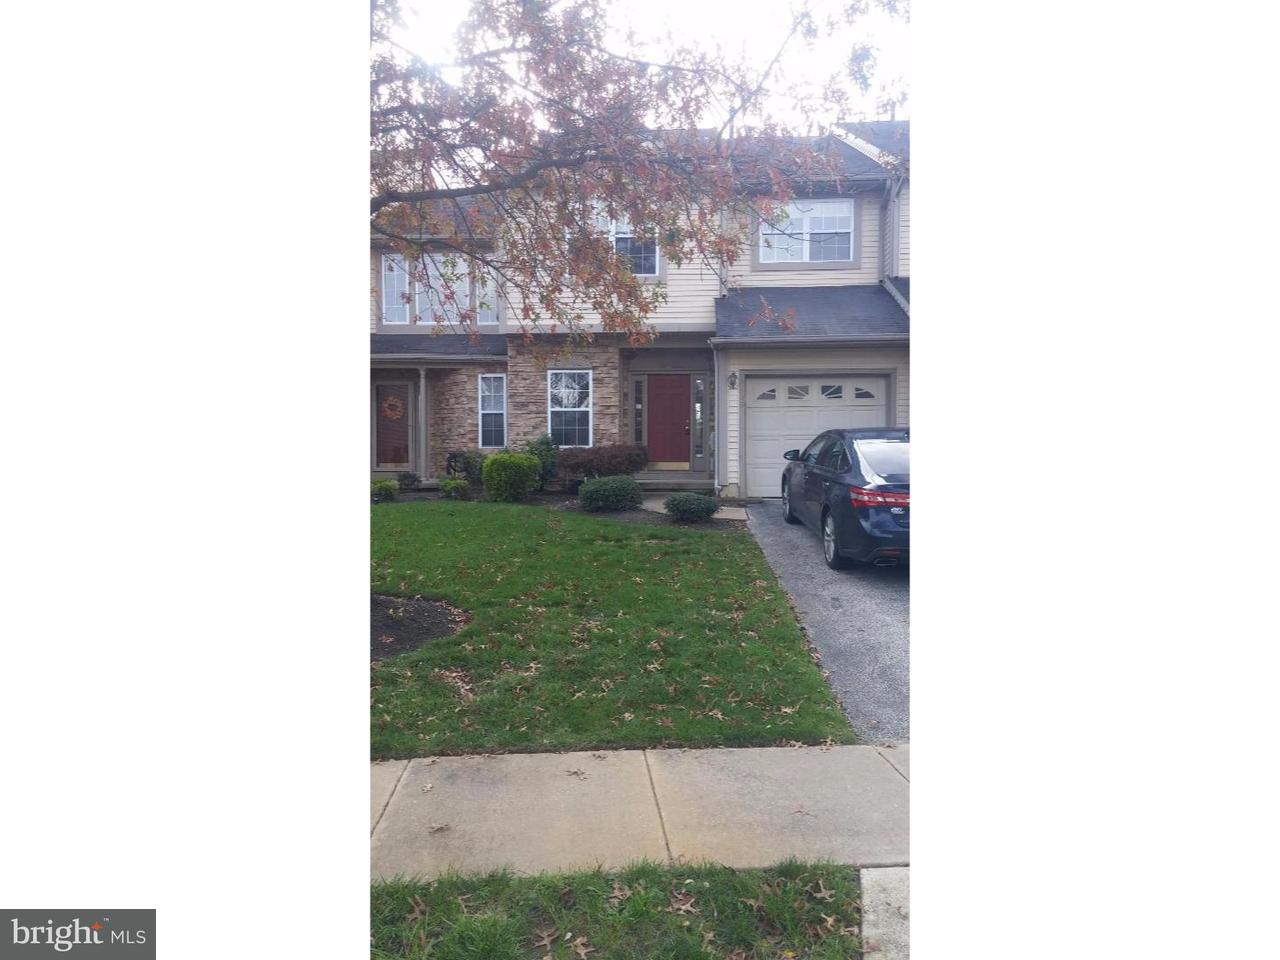 Condominium for Rent at 205 ROOSEVELT BLVD Berlin, New Jersey 08009 United States